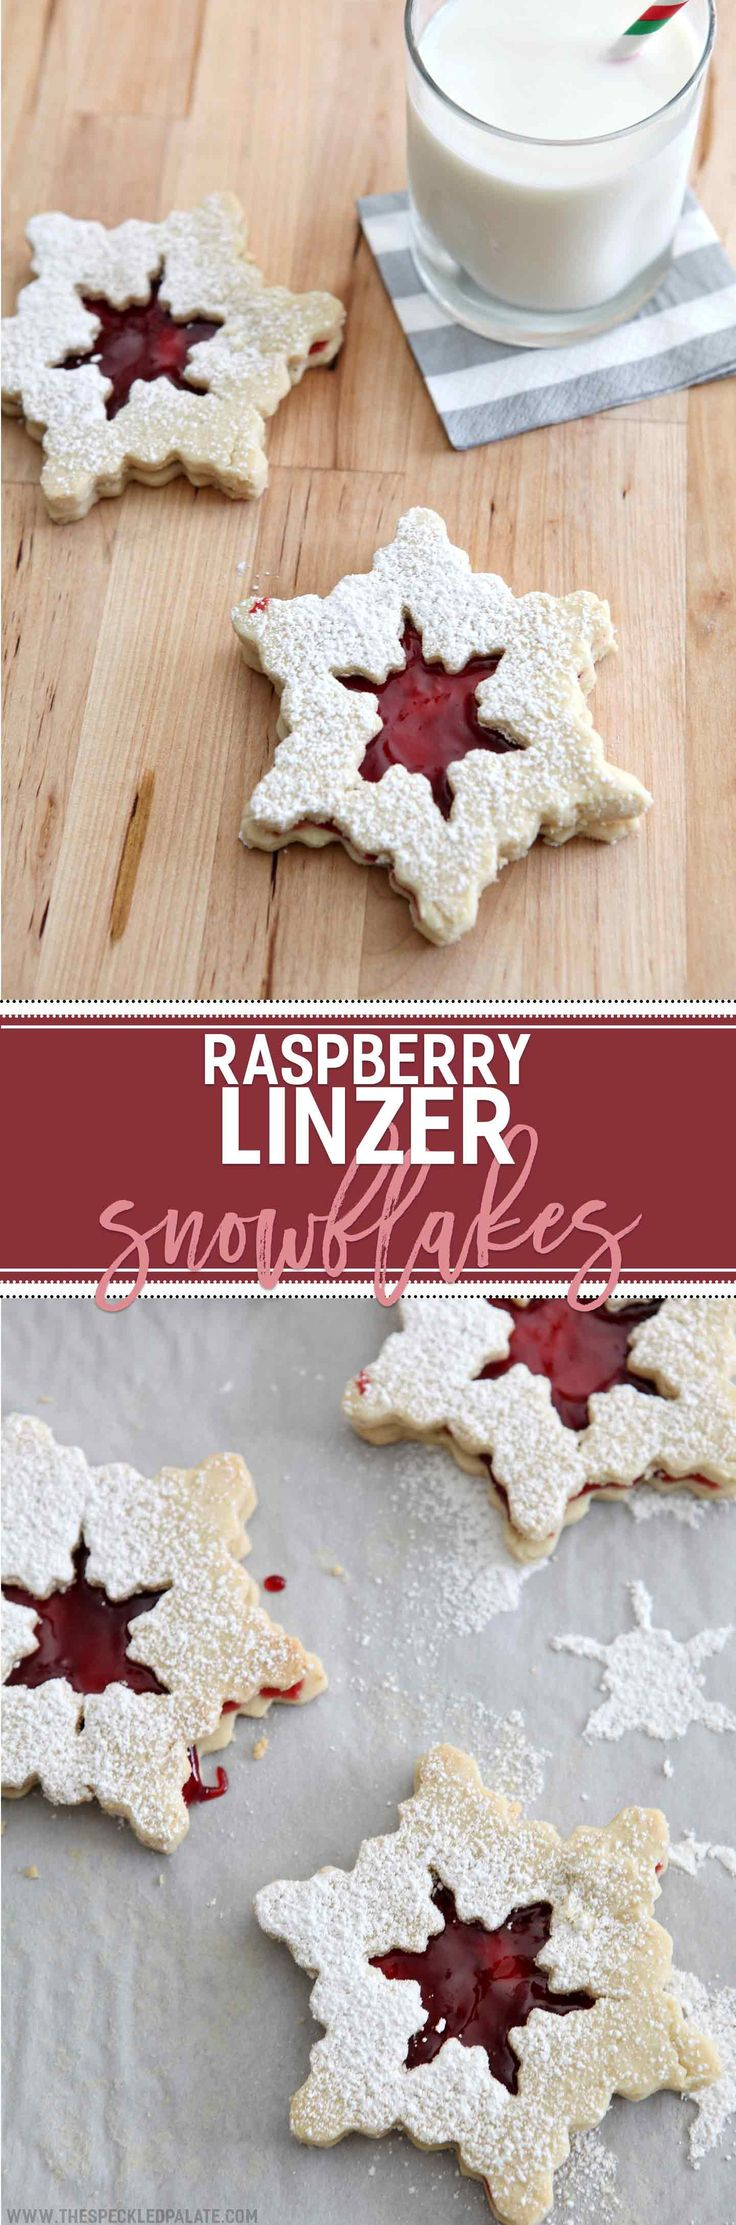 Slightly sweet shortbread-style cookies filled with a deliciously tart raspberry filling, these Raspberry Linzer Snowflake Cookies are the perfect balance for those who love the not-so-sweet desserts!